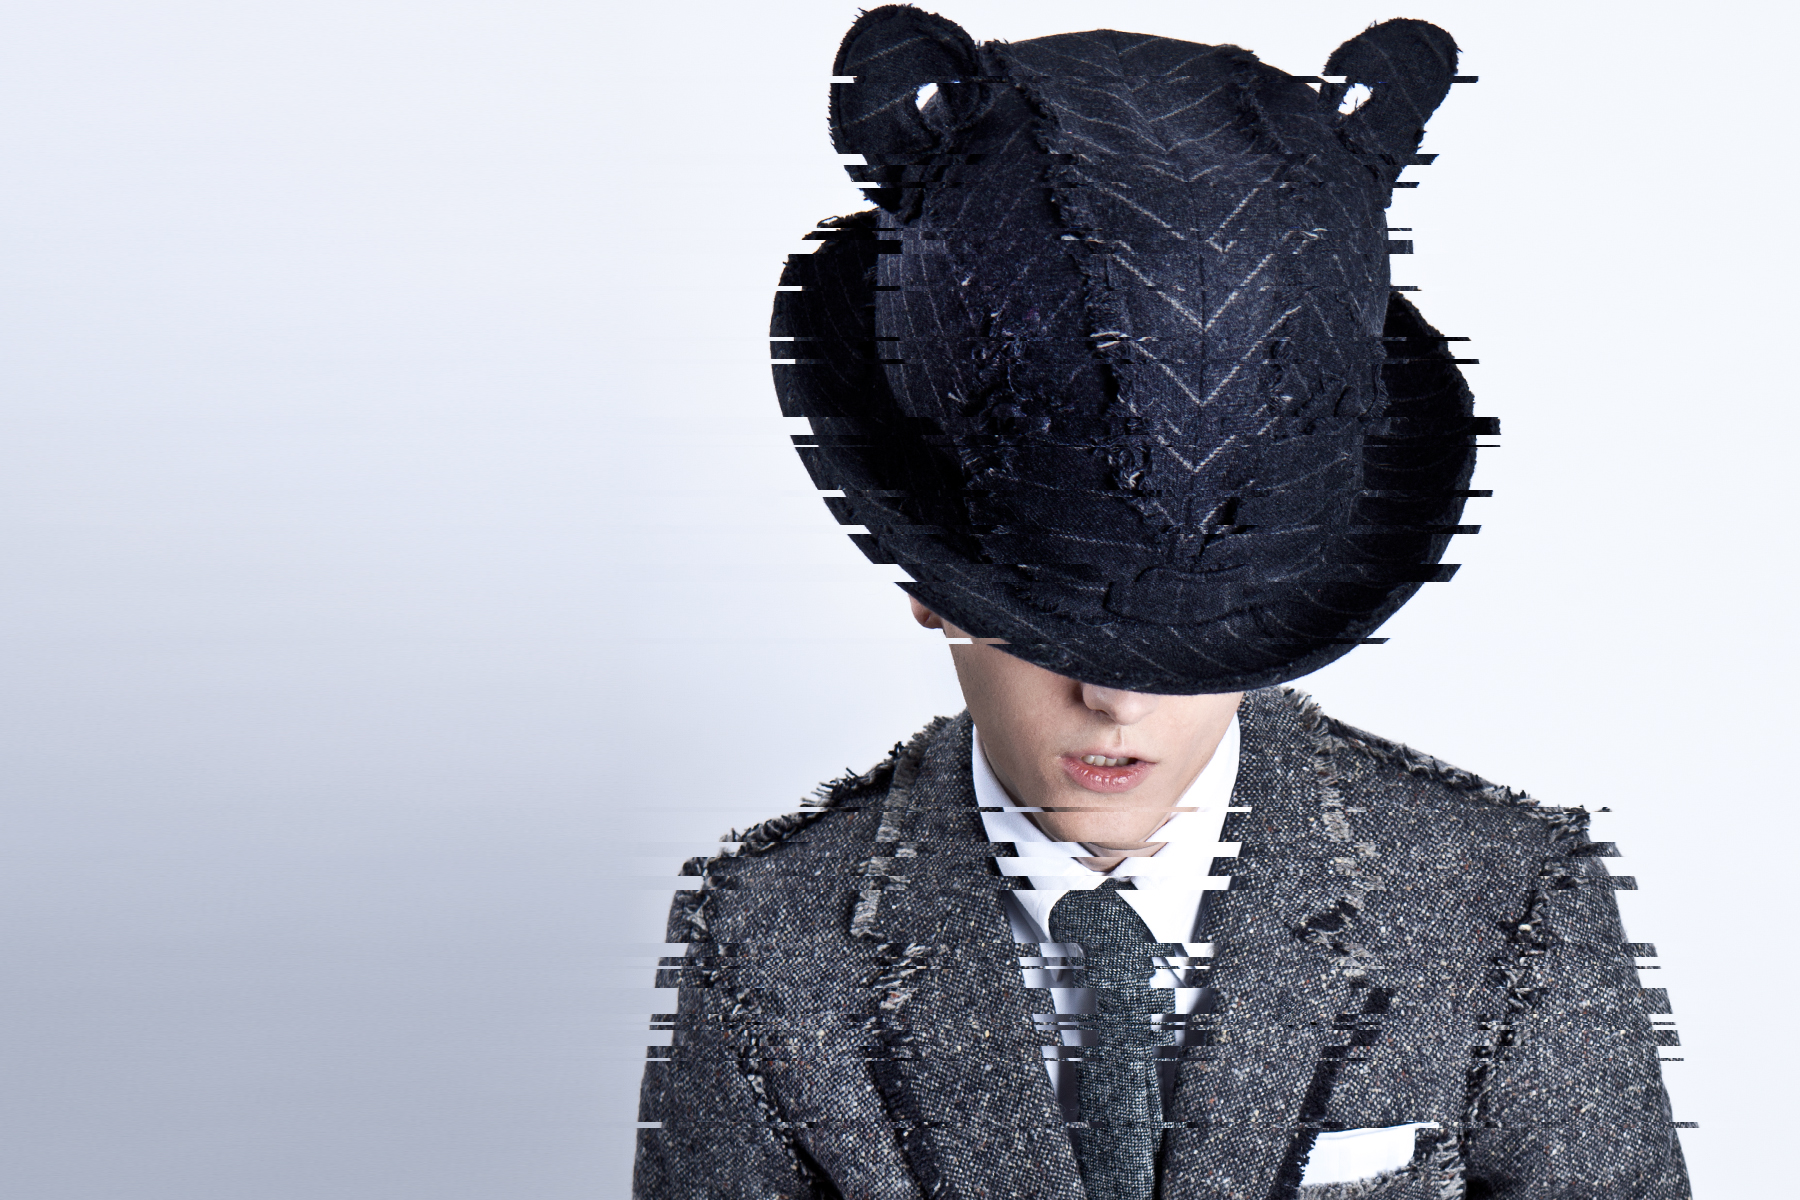 thom browne stephen jones 2014 spring summer dystopian editorial